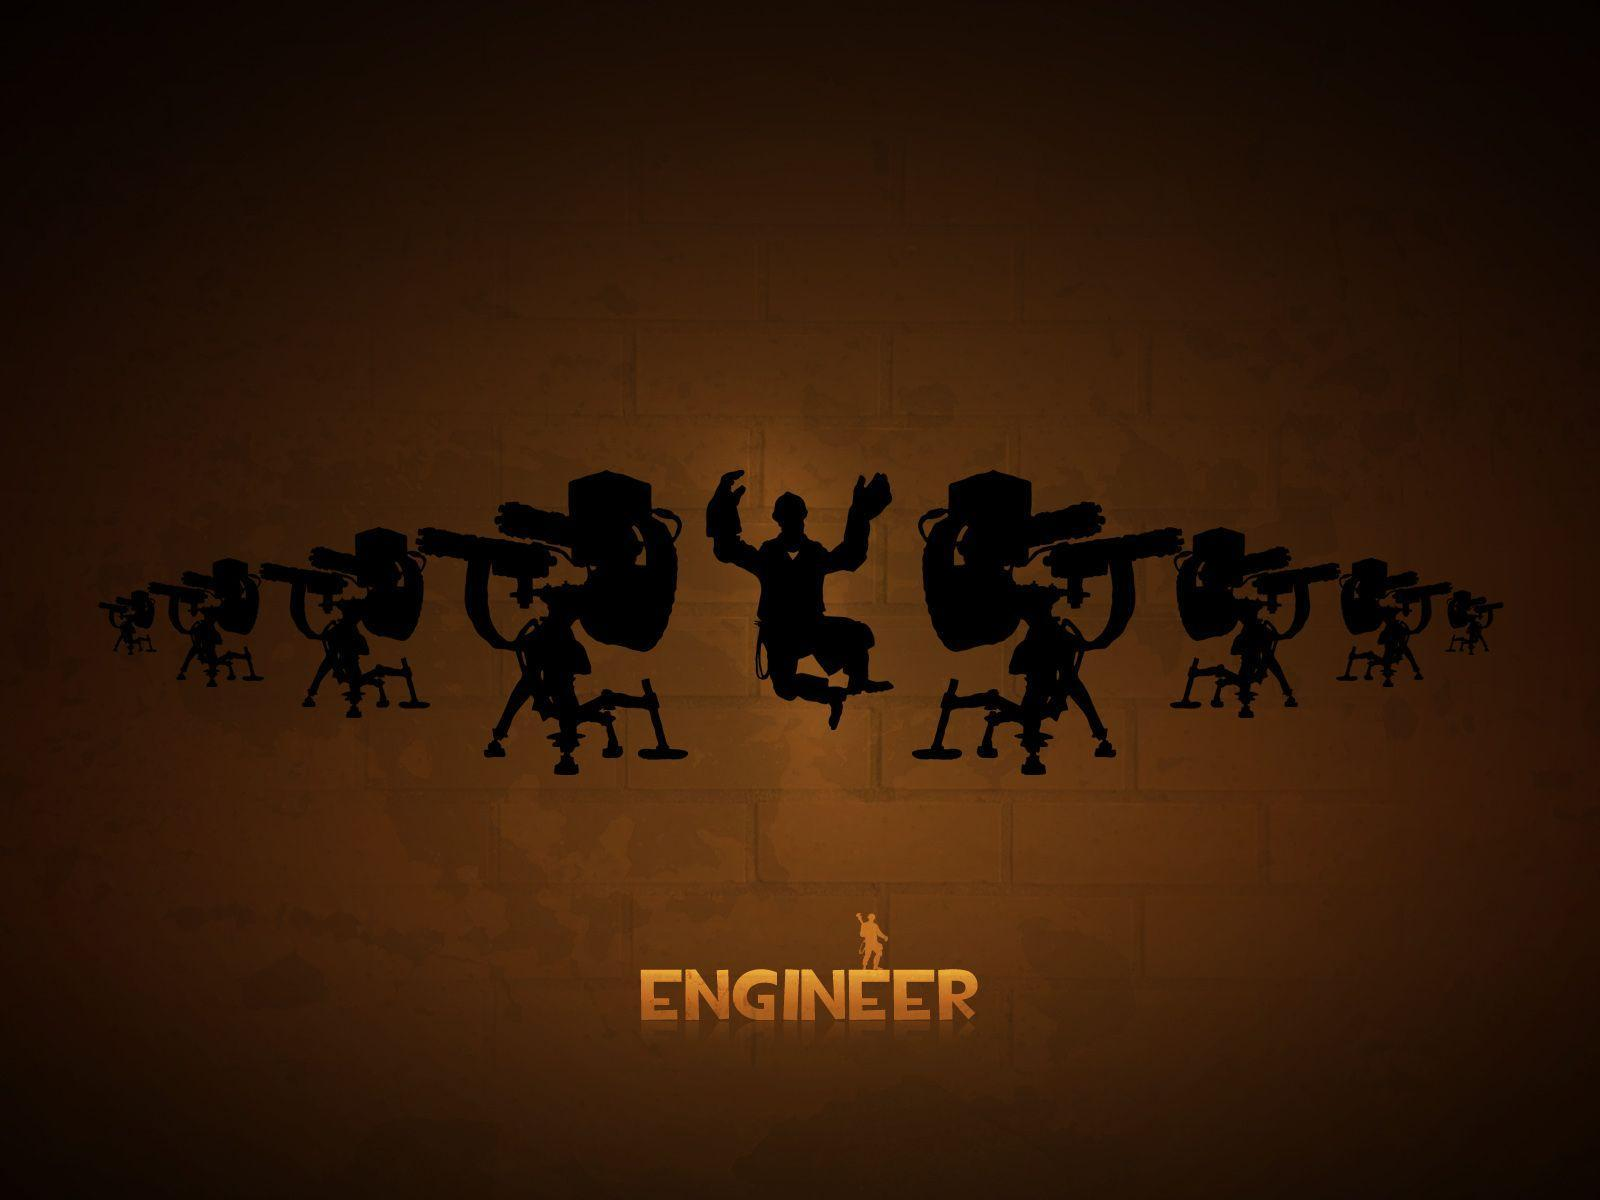 Civil Engineering Quotes Wallpapers Team Fortress 2 Engineer Wallpapers Wallpaper Cave